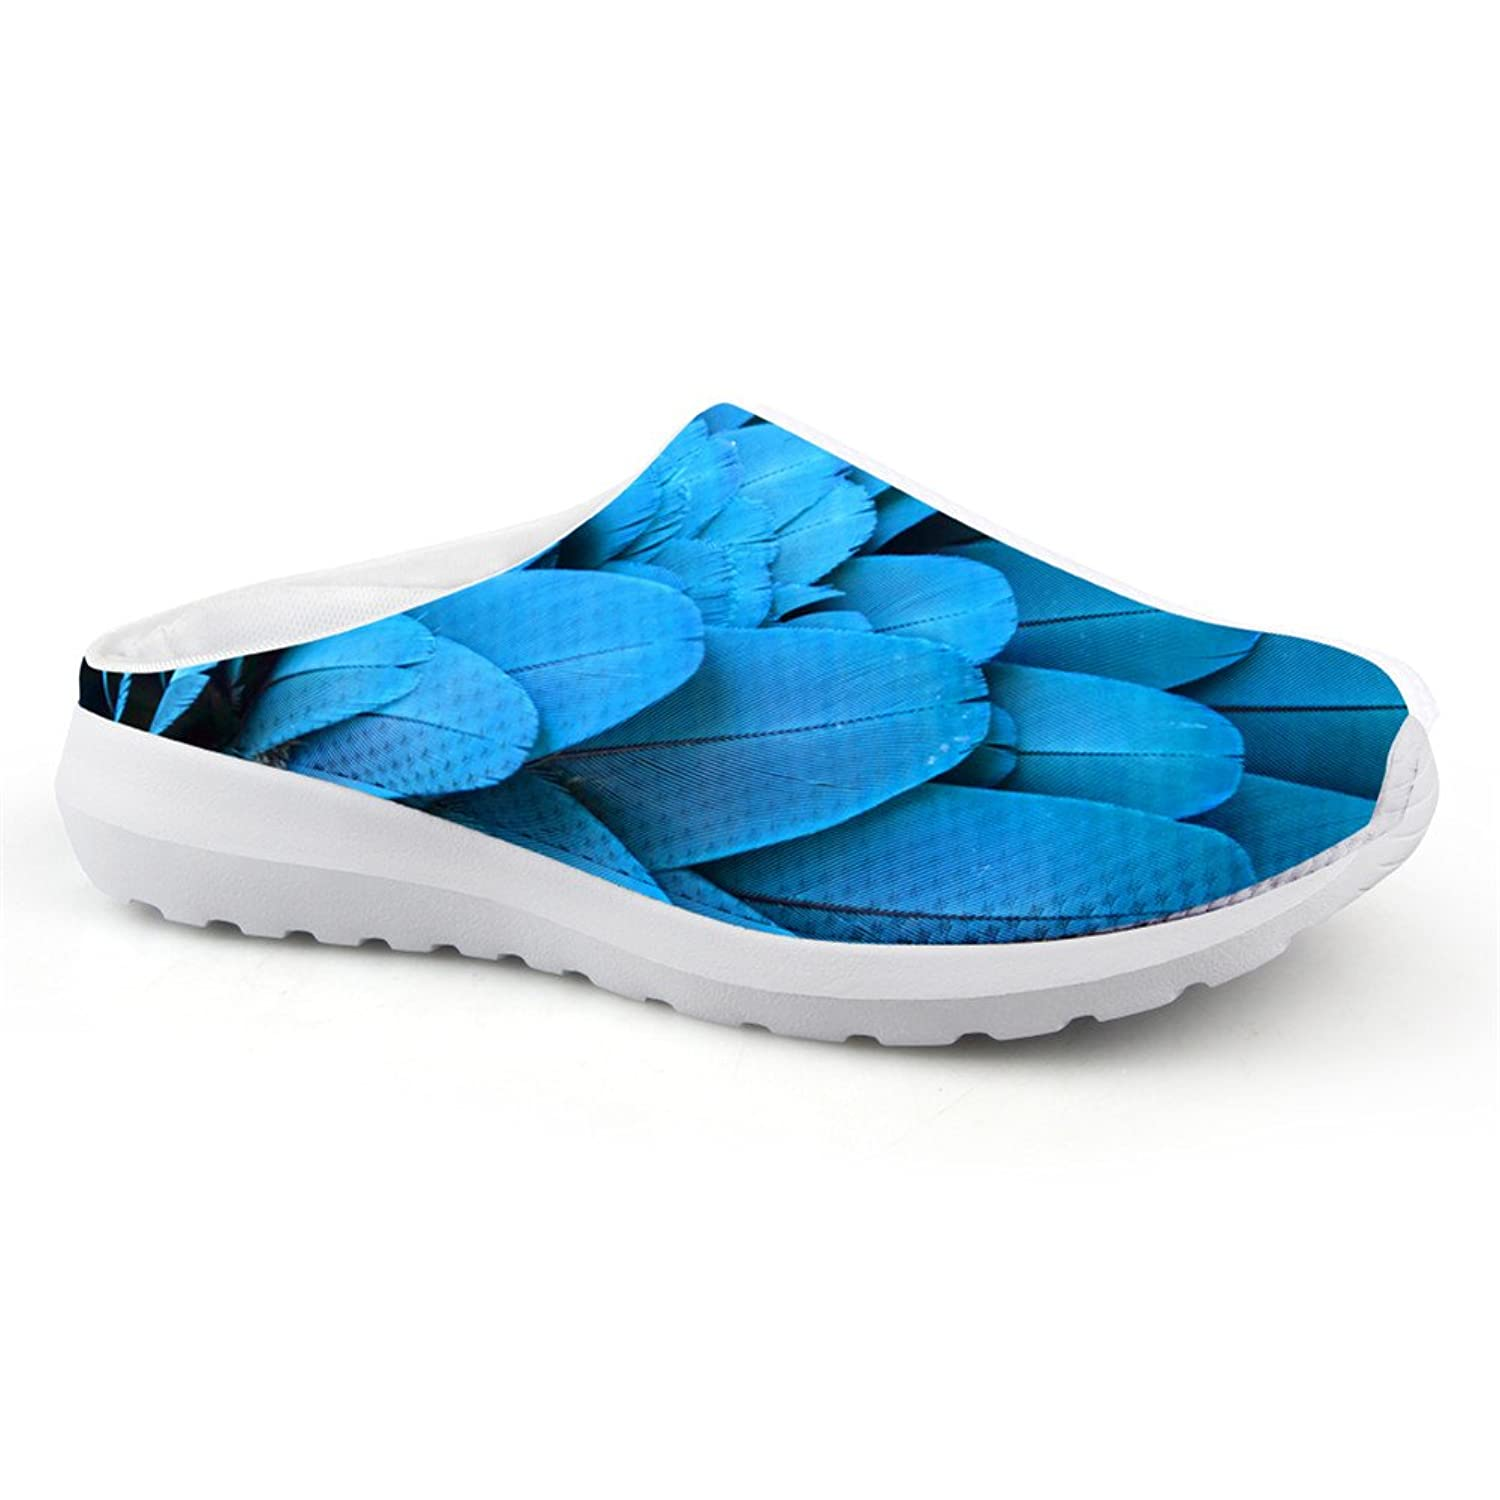 Unisex Clogs, 3D Printing Graphic Comfortable Convenience Men's Beach Sandals Mesh Loafer Slippers (Color : COLOR2, Size : 10 US Man)